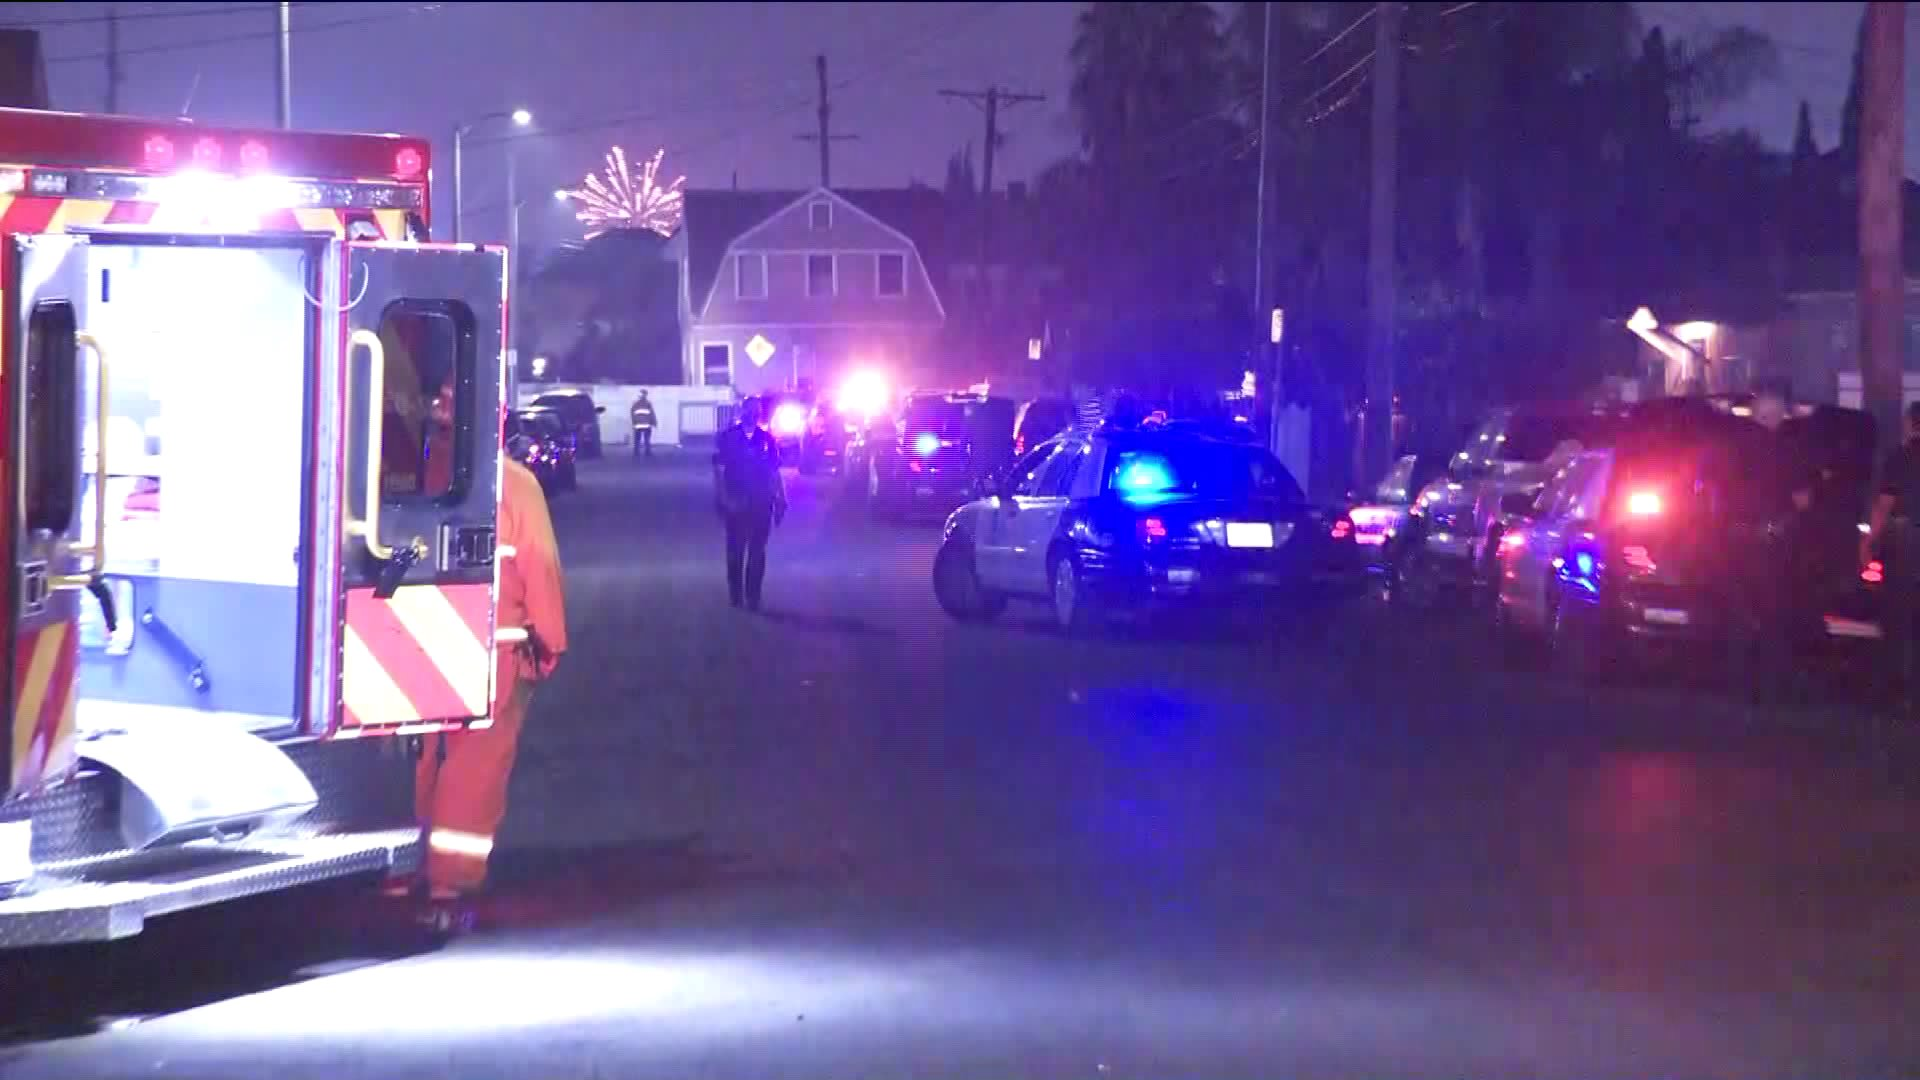 Officers respond to the scene of a shooting in South Central L.A. on July 4, 2019. (Credit: KTLA)